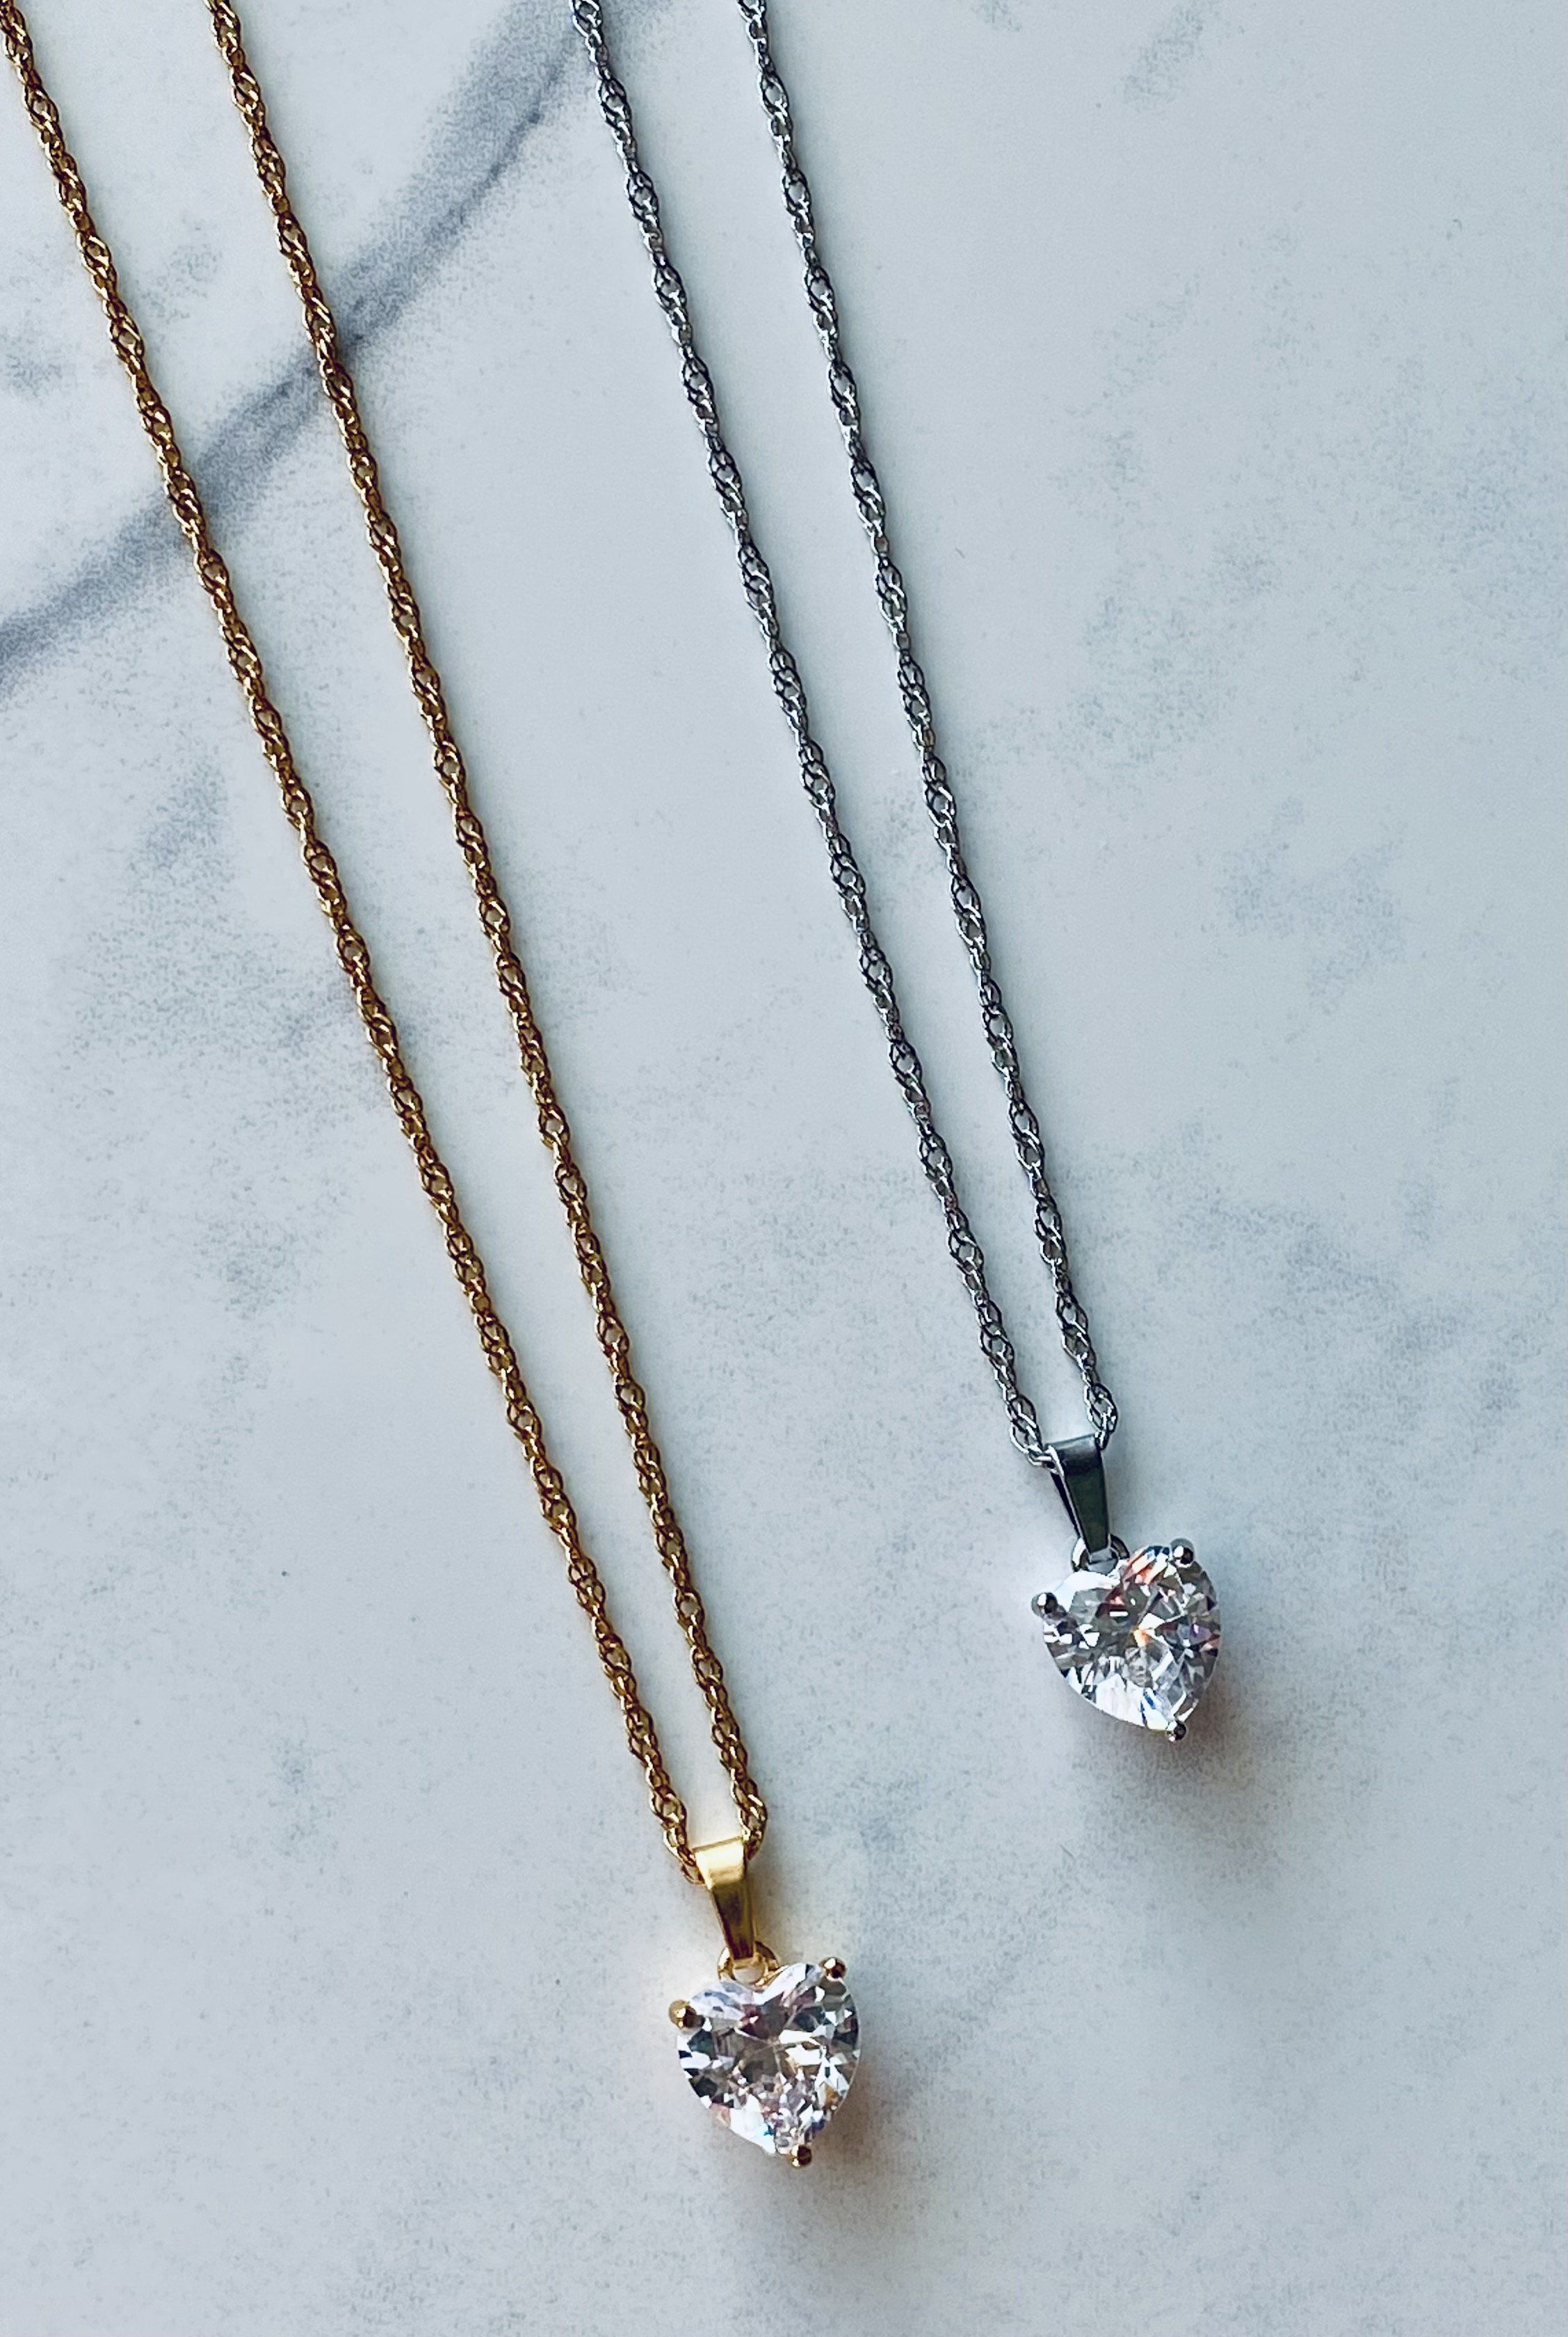 You're going to Love our Amor Pendant Chain! Zircon heart pendant on a stainless steel singapore twist chain. Available in gold or silver. 15 inches with 3 inch extender.